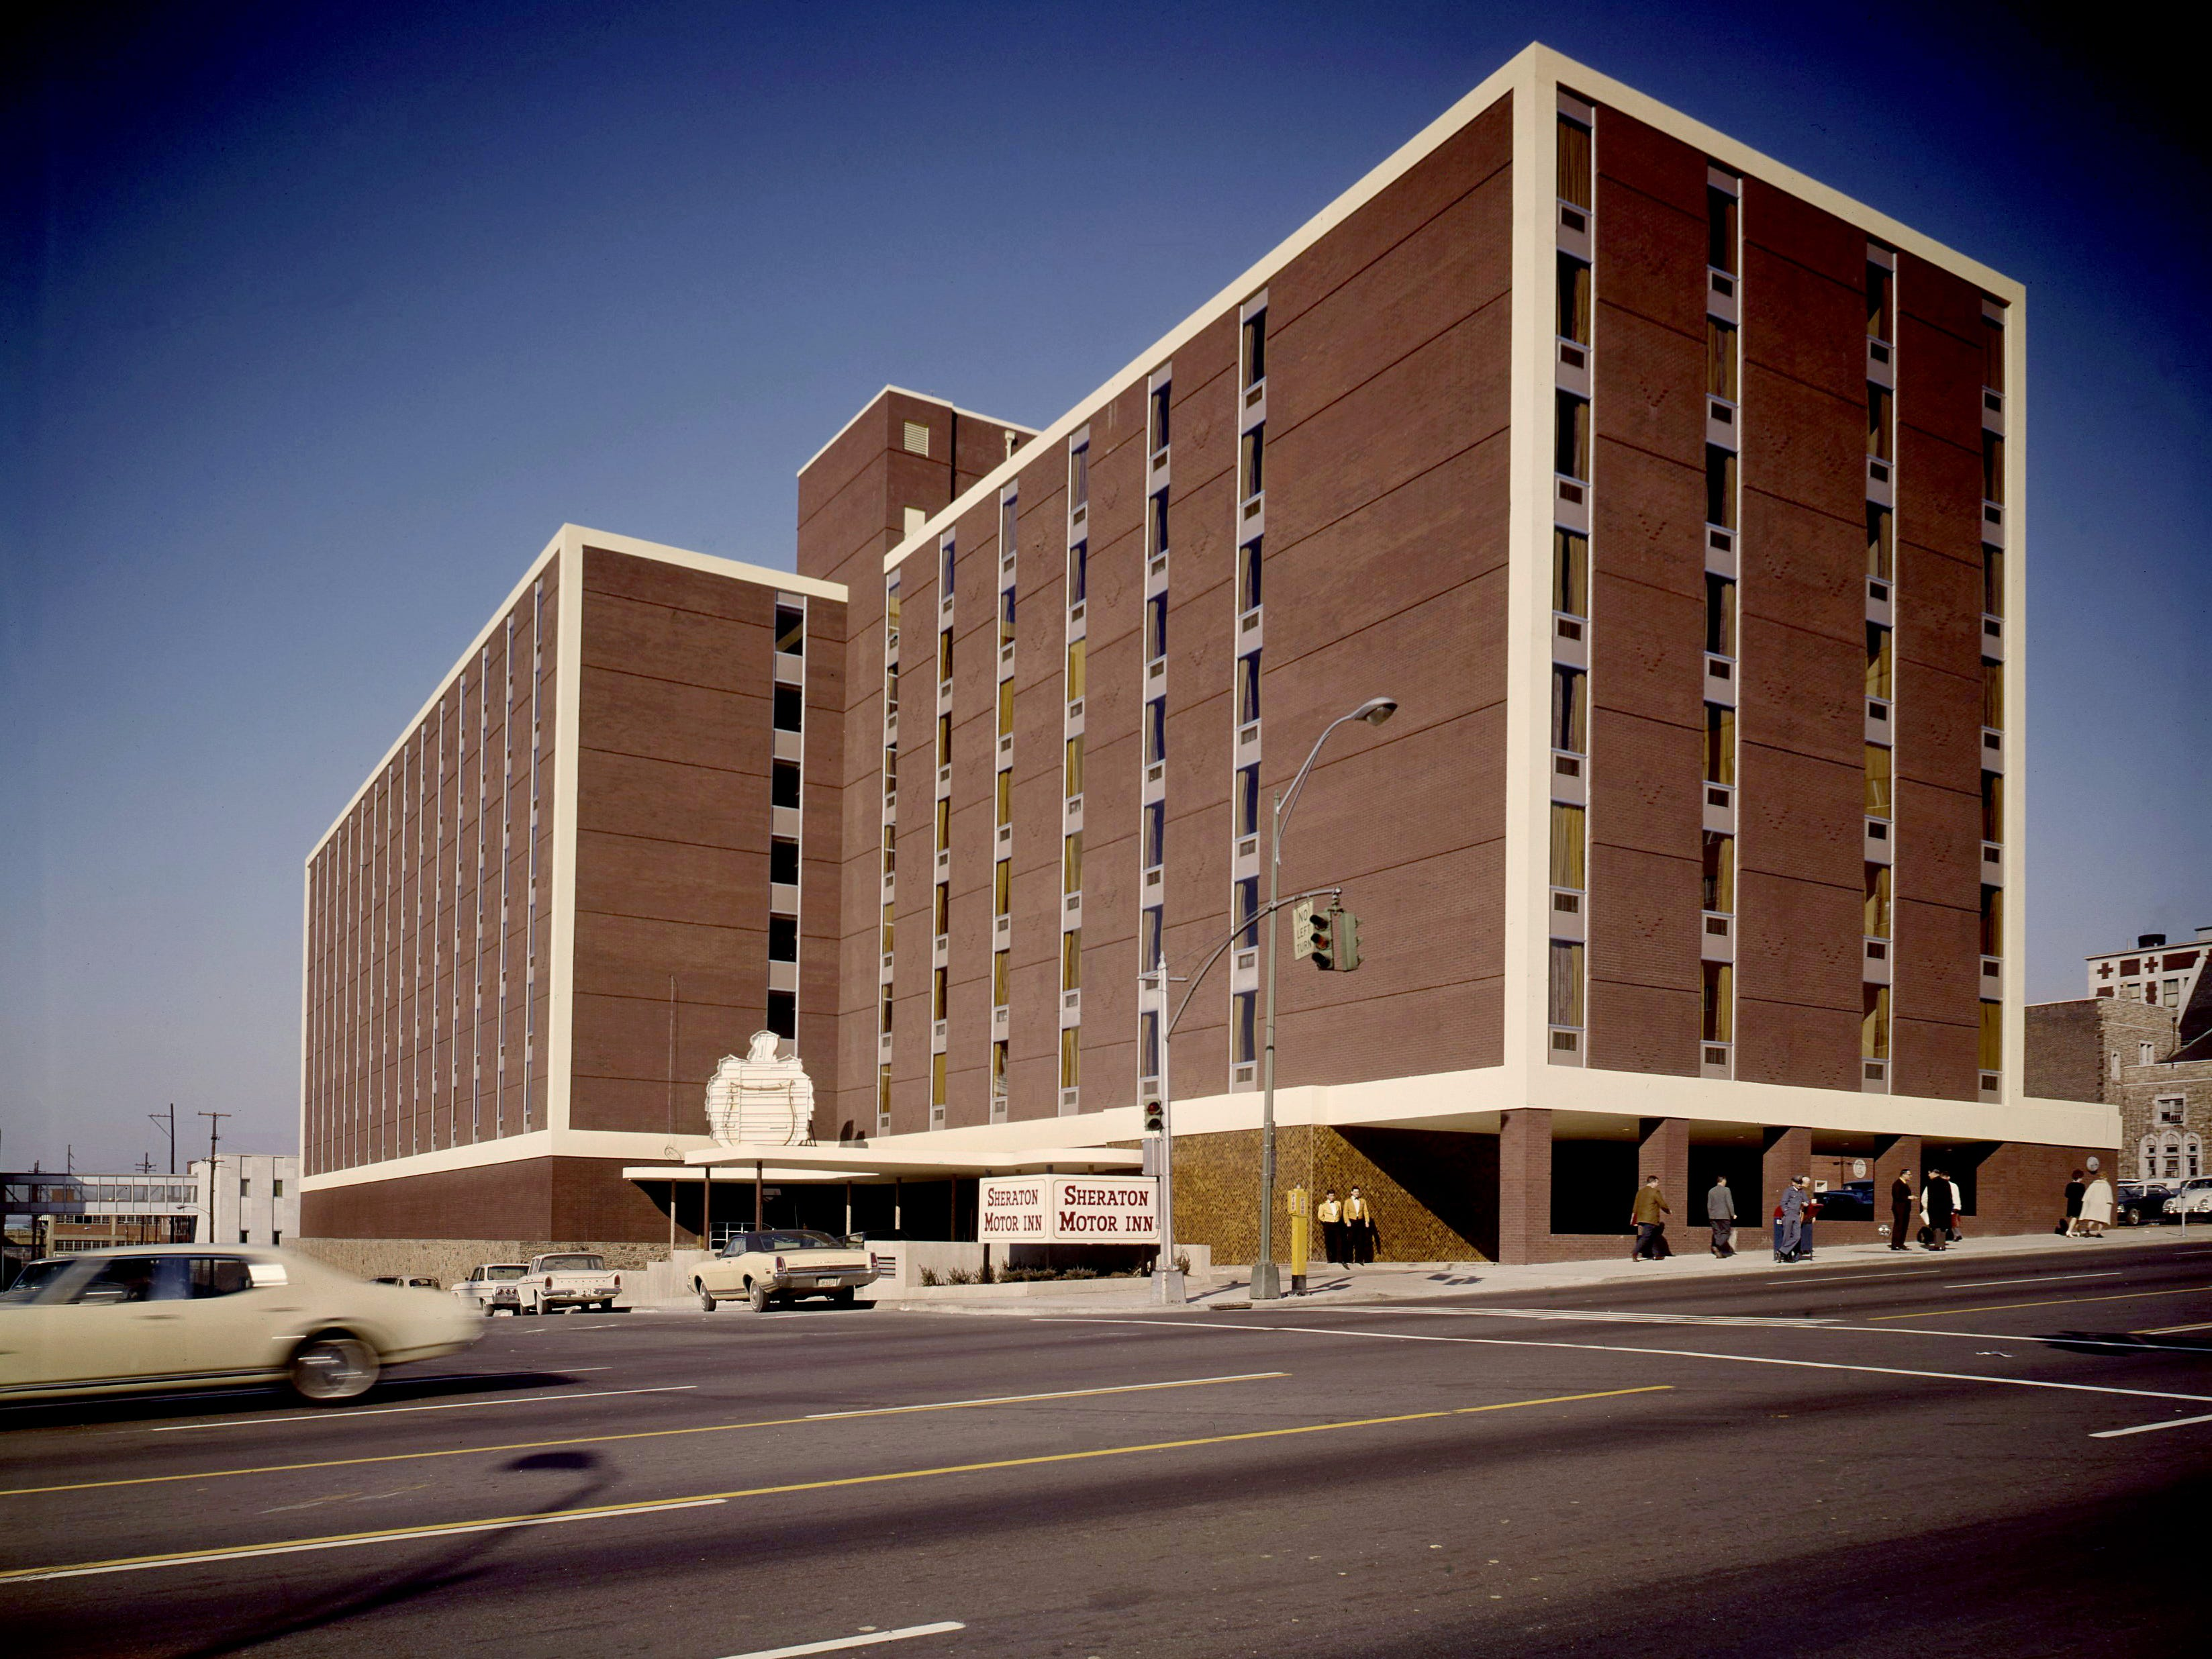 Still missing part of its sign, the new Sheraton Motor Inn at 10th and Broadway is now serving guests Dec. 11, 1968, before its grand opening. Sheraton Nashville, with 300 guest rooms, is the newest lure for travelers and convention attendees.